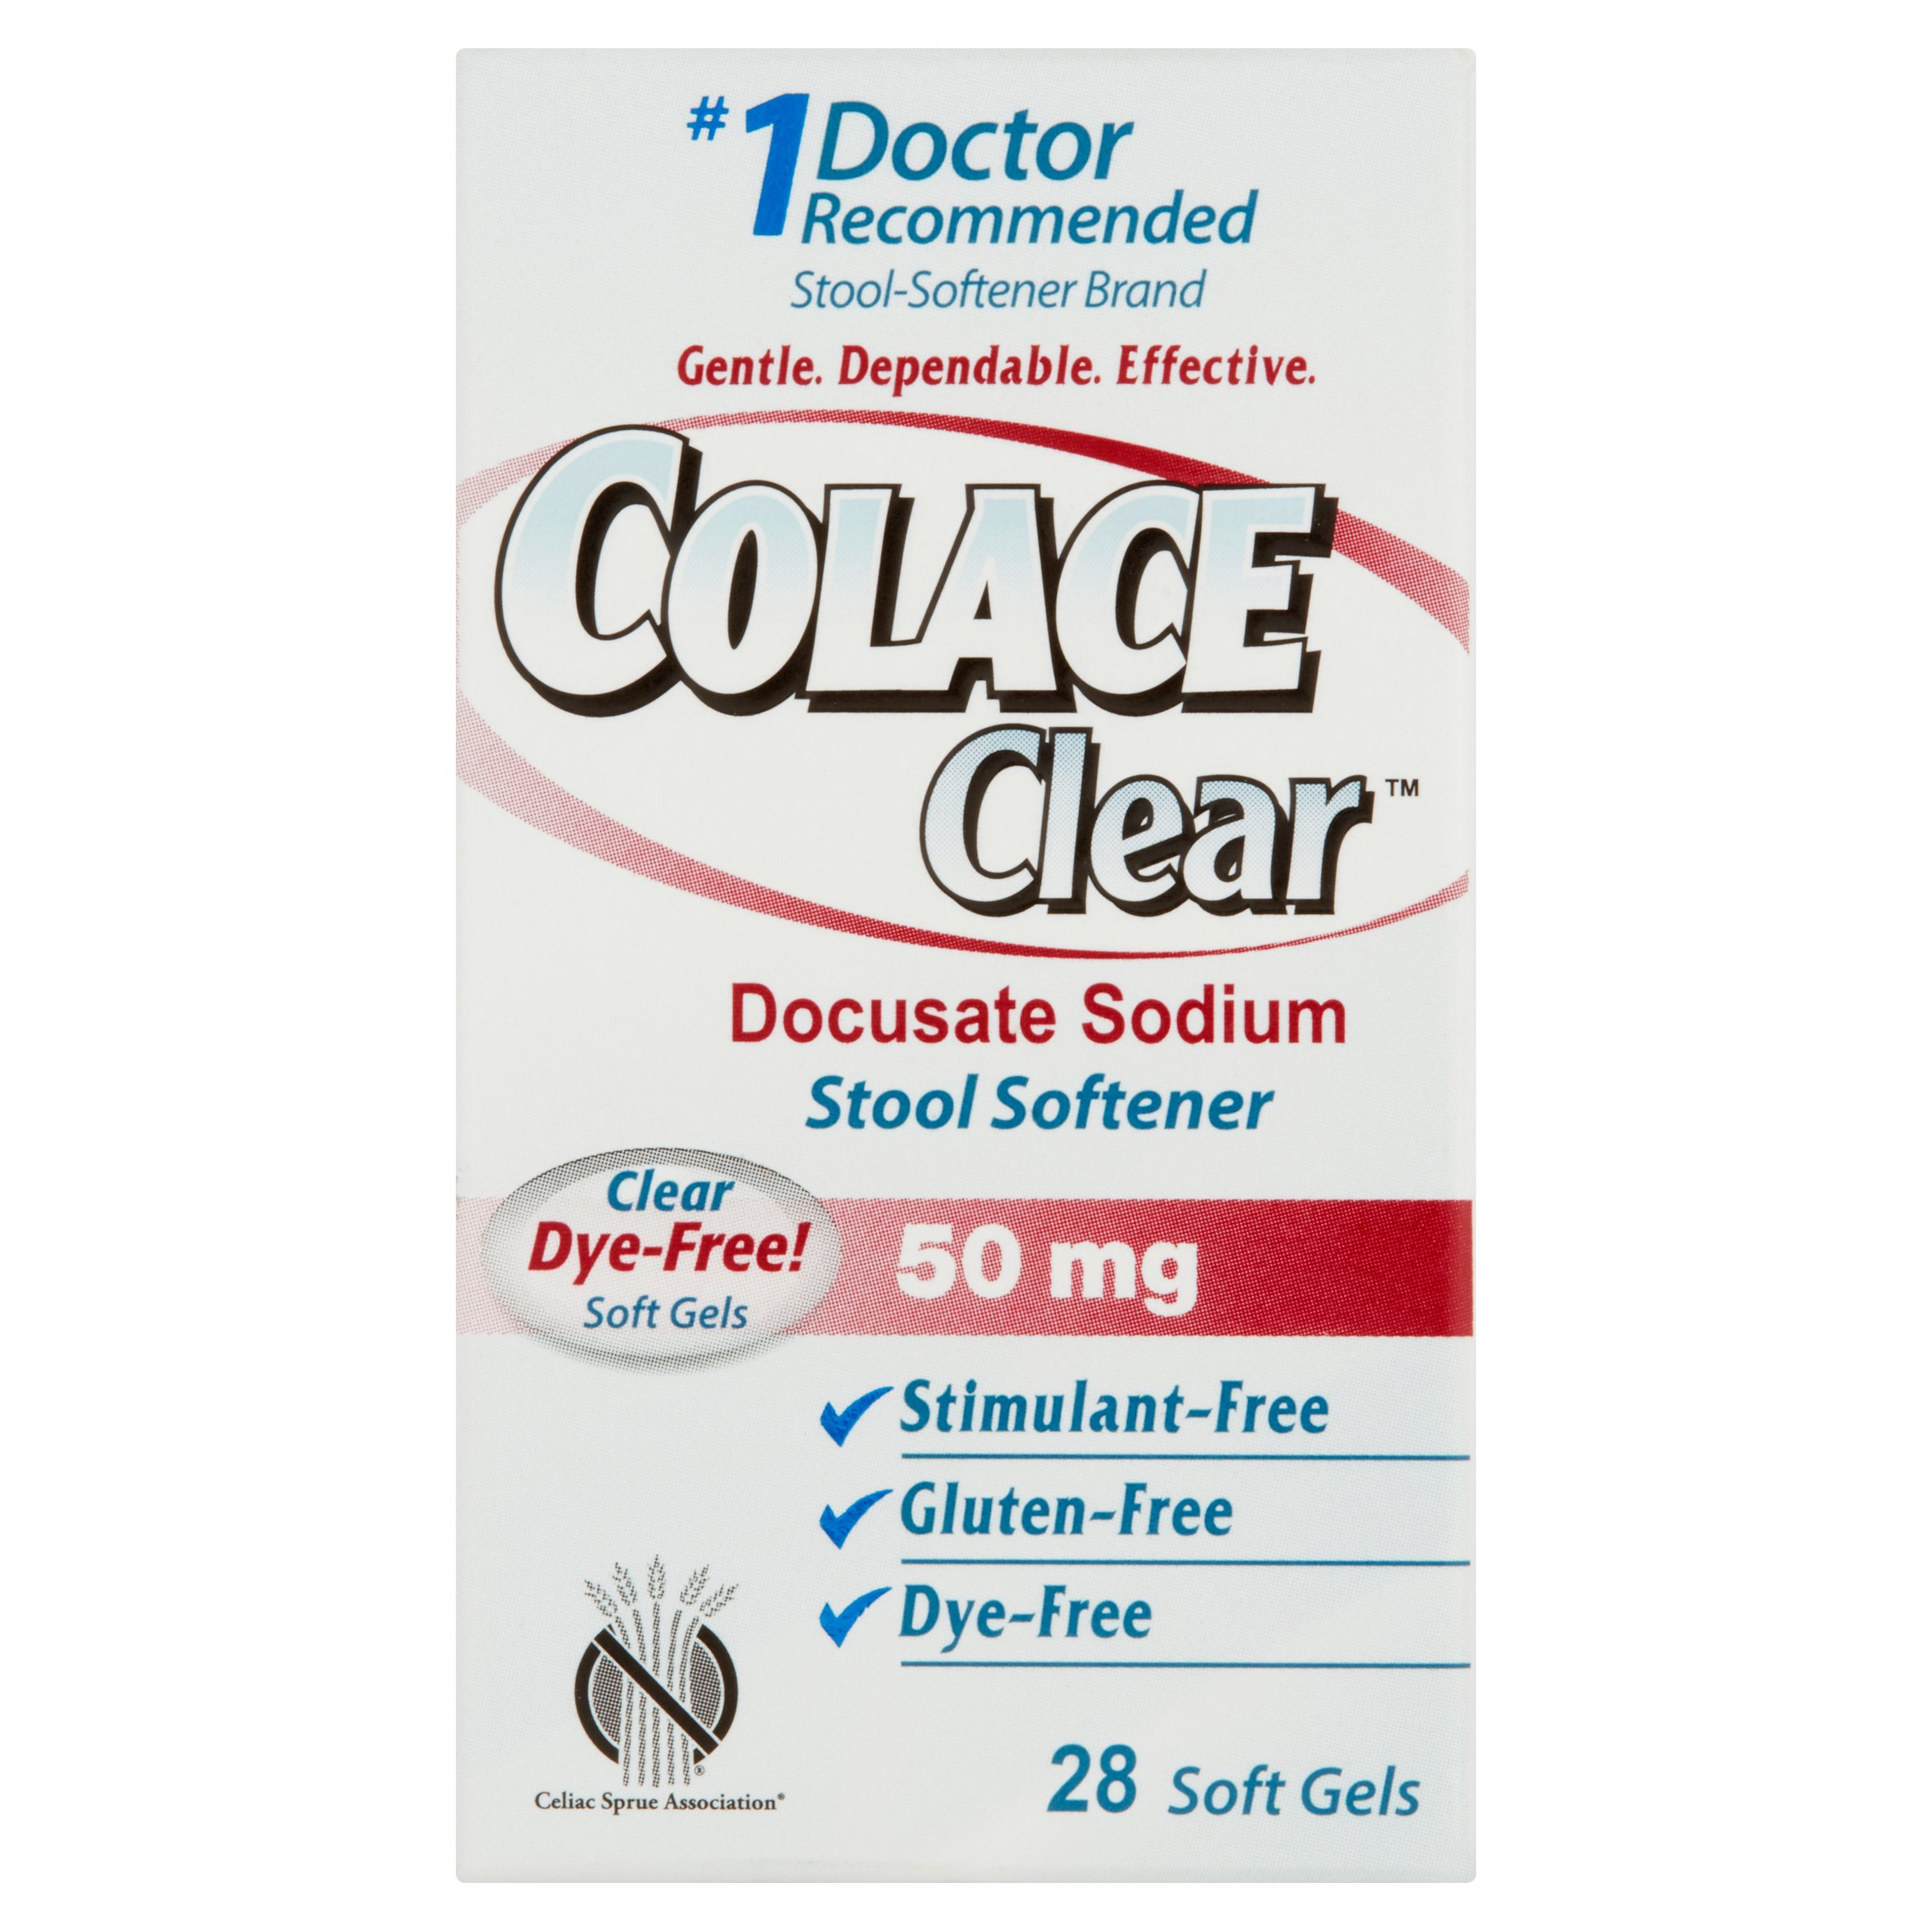 Colace Clear Docusate Sodium Stool Softener Soft Gels 50